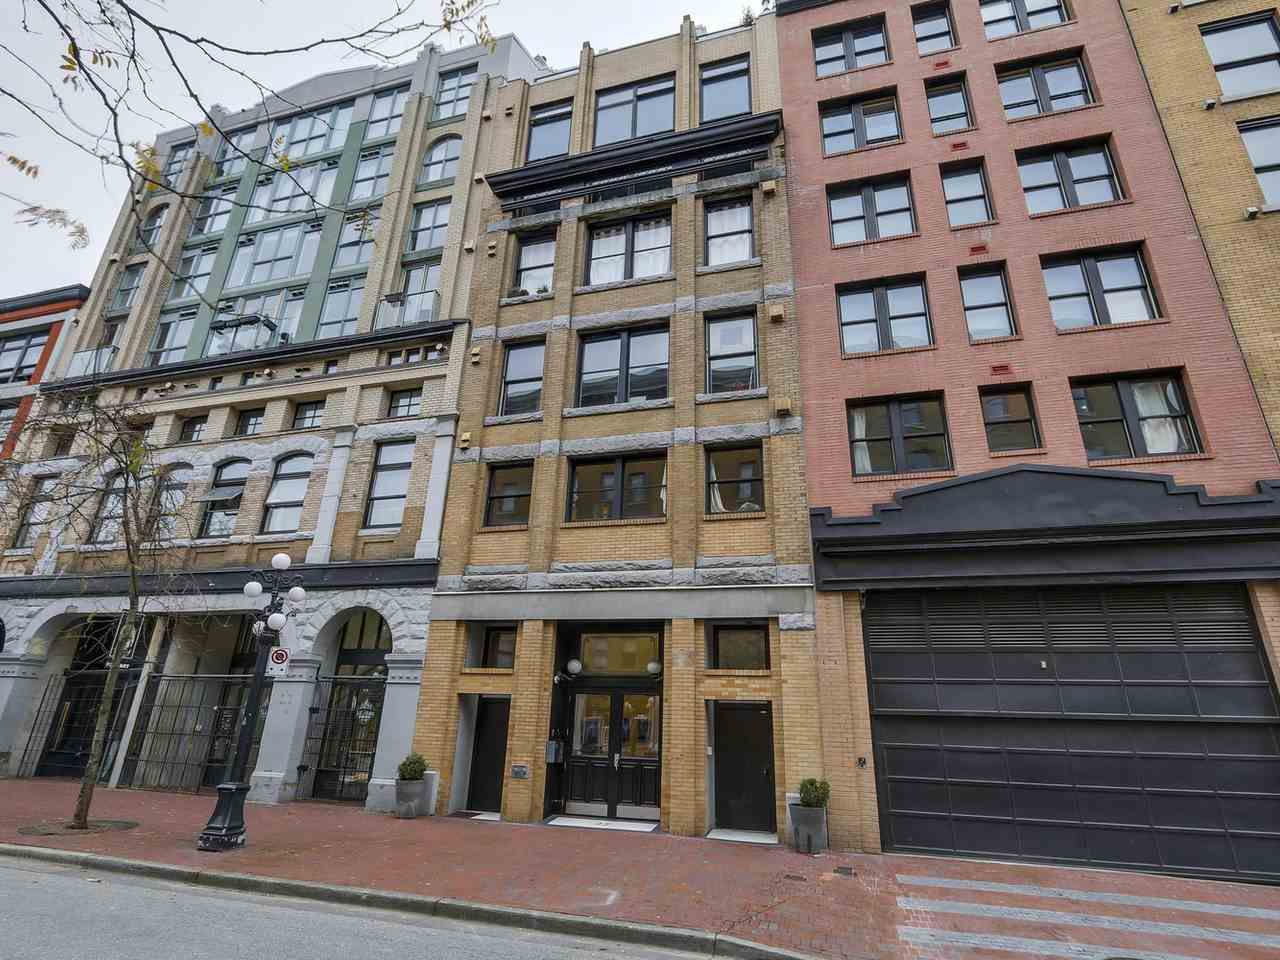 Main Photo: 710 27 ALEXANDER Street in Vancouver: Downtown VE Condo for sale (Vancouver East)  : MLS®# R2124428